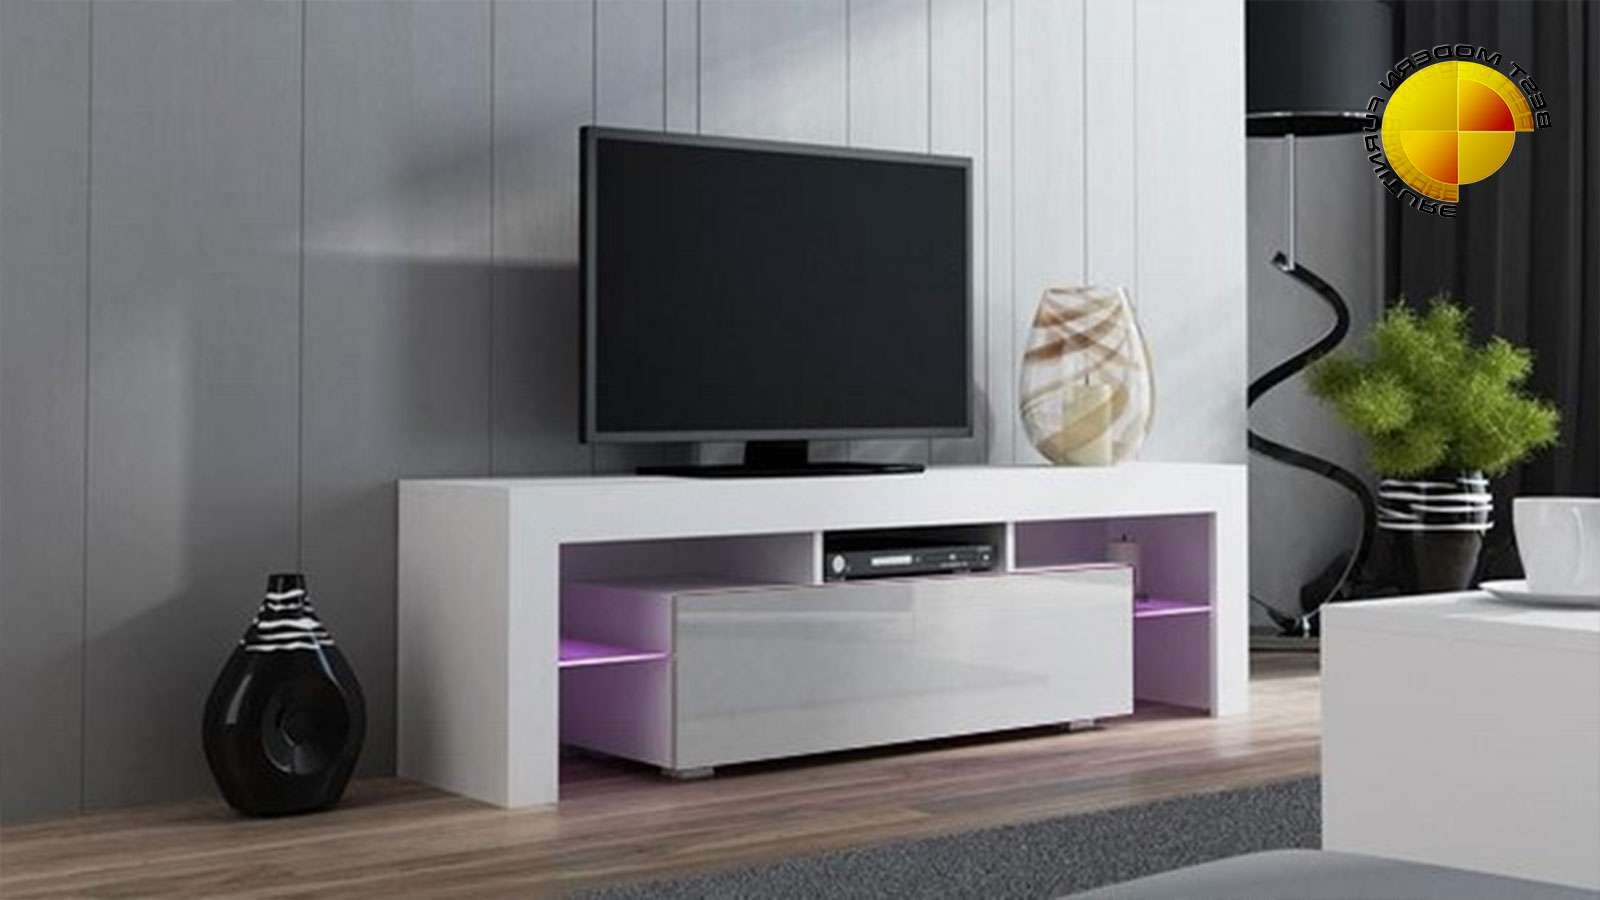 Modern Tv Stand 160Cm High Gloss Cabinet Rgb Led Lights White Unit Pertaining To White High Gloss Tv Stands (View 10 of 15)